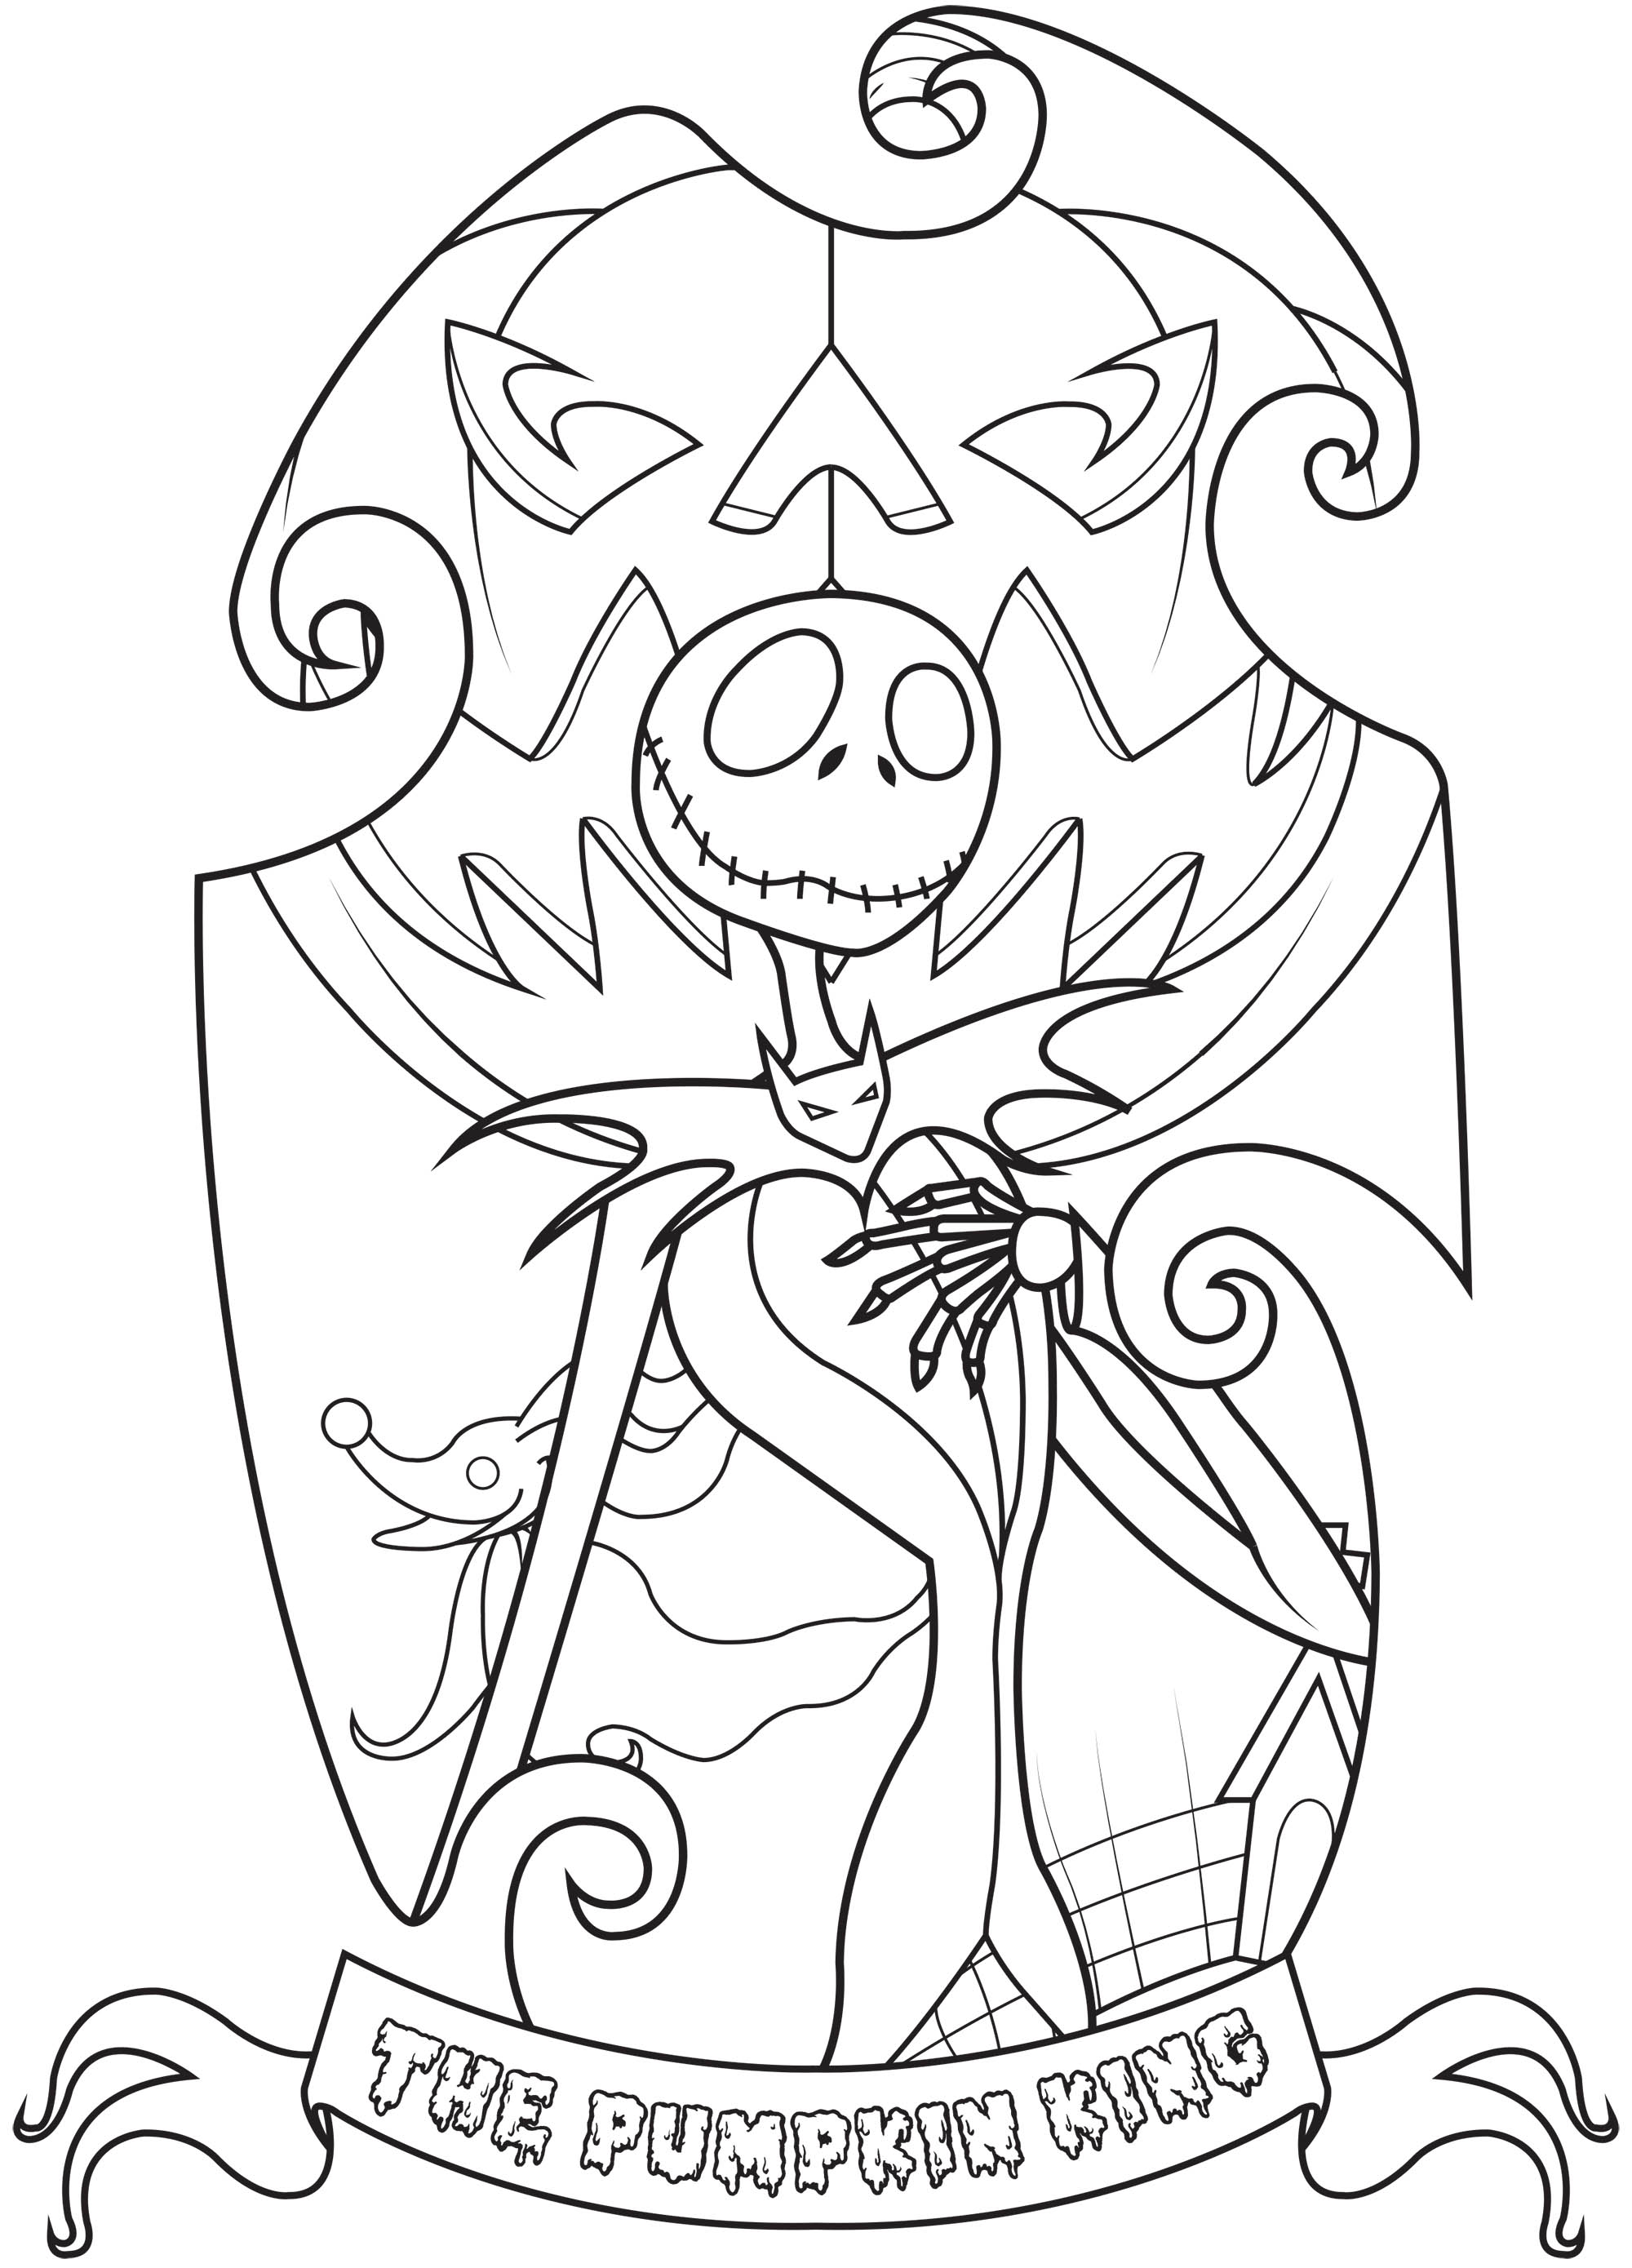 Jack Skellington The Nightmare Before Christmas Kids Coloring Pages